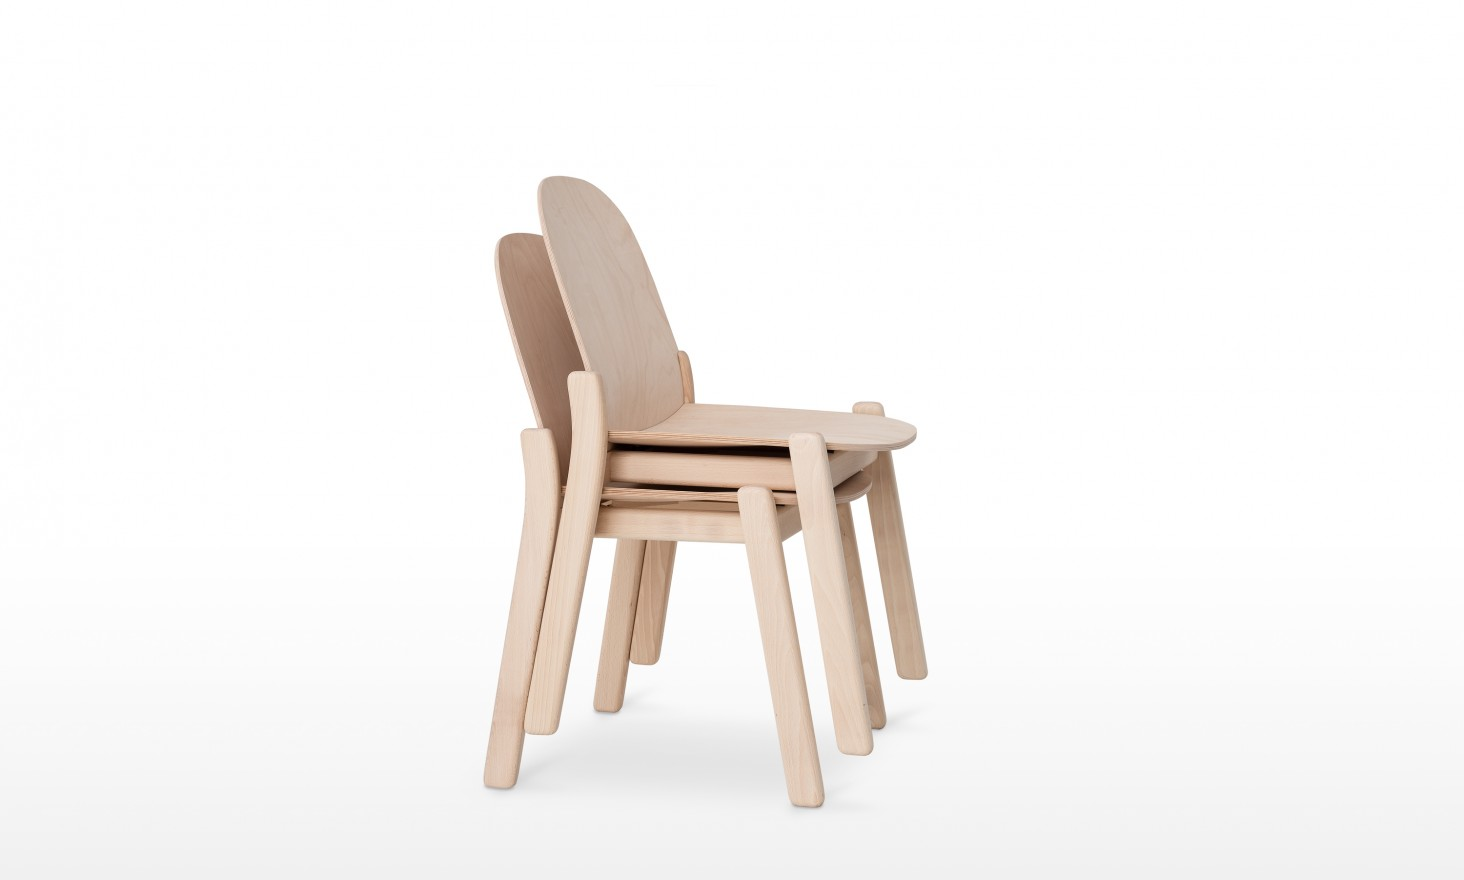 NORDIC wooden chairs